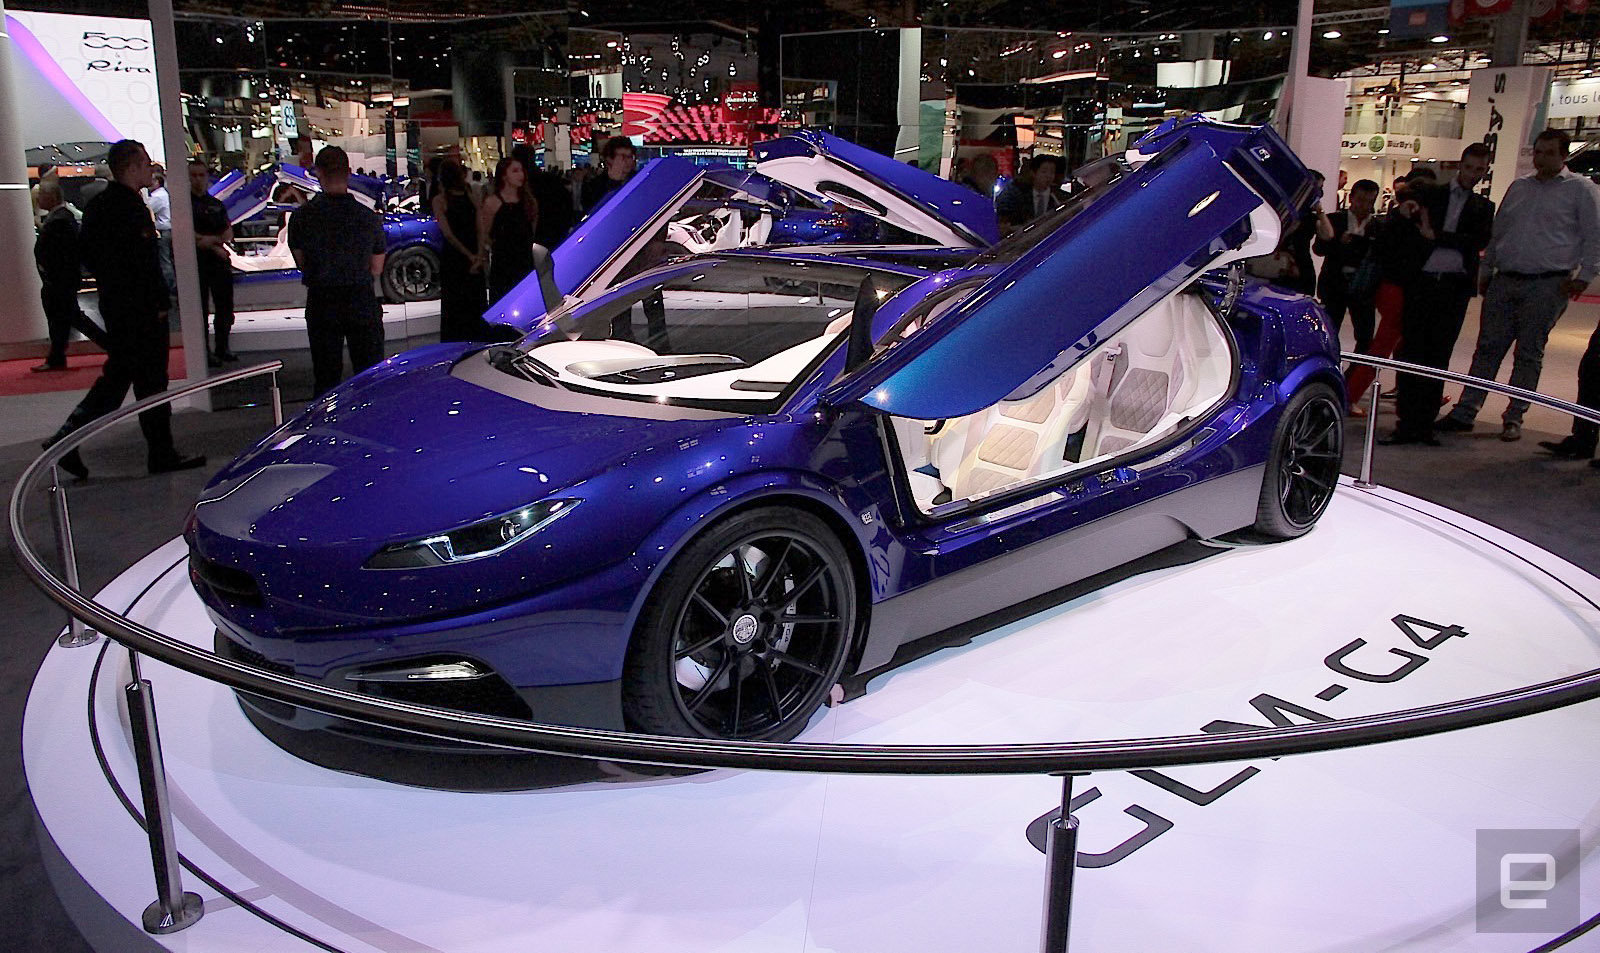 GLM G4: Japanese electric supercar is ambitious to compete with Tesla